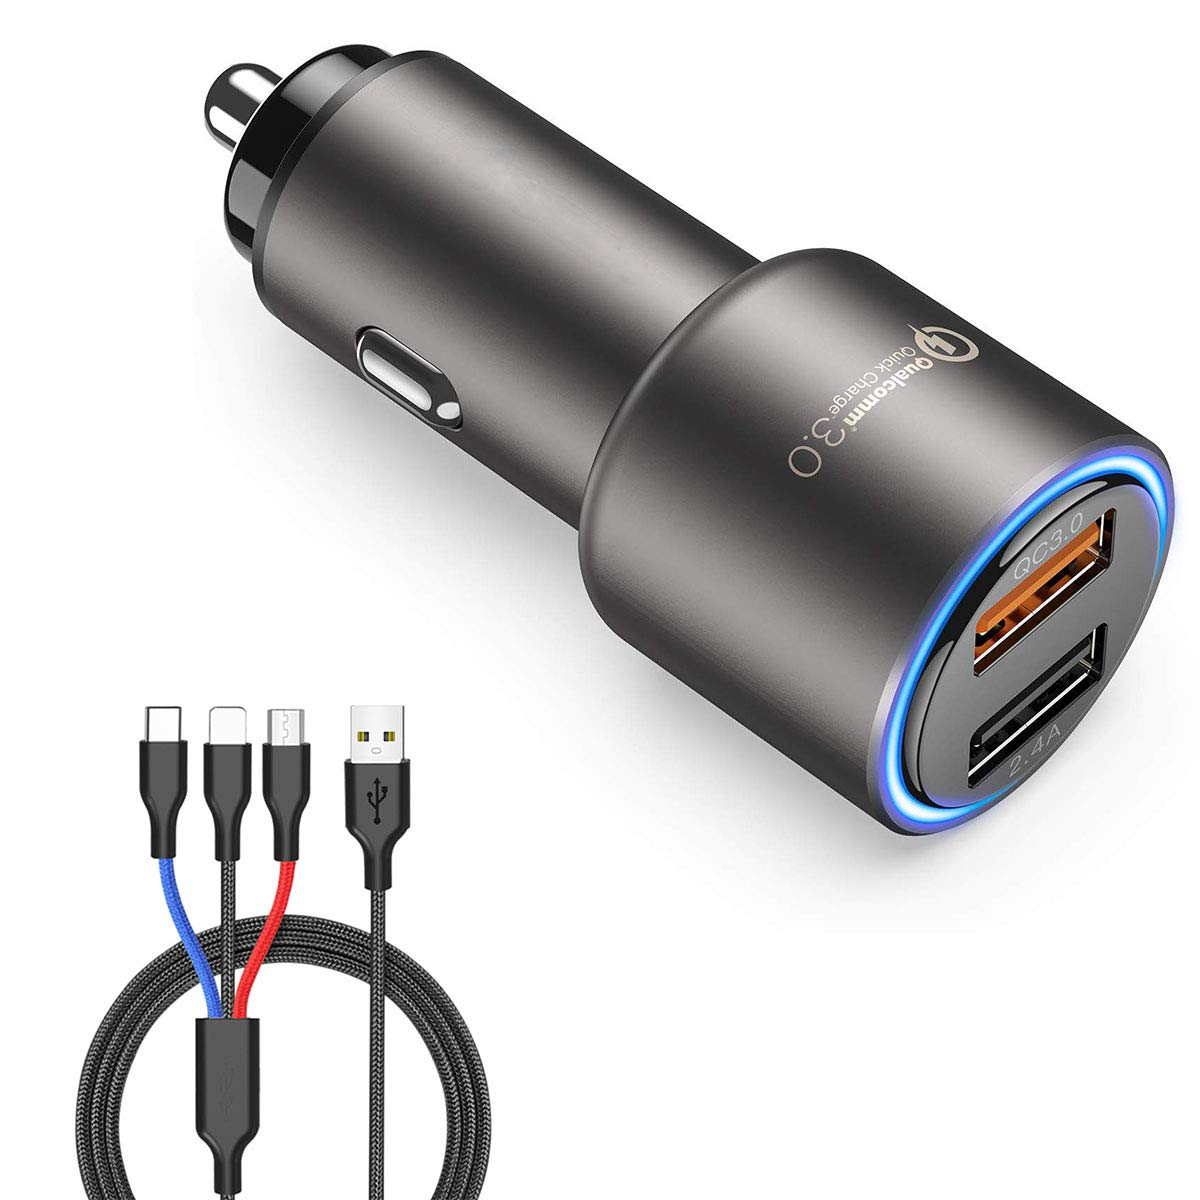 ZDZHU Car Charger - 30W Metal Dual Ports USB Fast Car Adapter,Smart QC 3.0 Quick Car Phone Charger for iPhone Xs X Max XR 8 7 6S Galaxy S9 S8 S7 S6,with 3 in 1 Cable